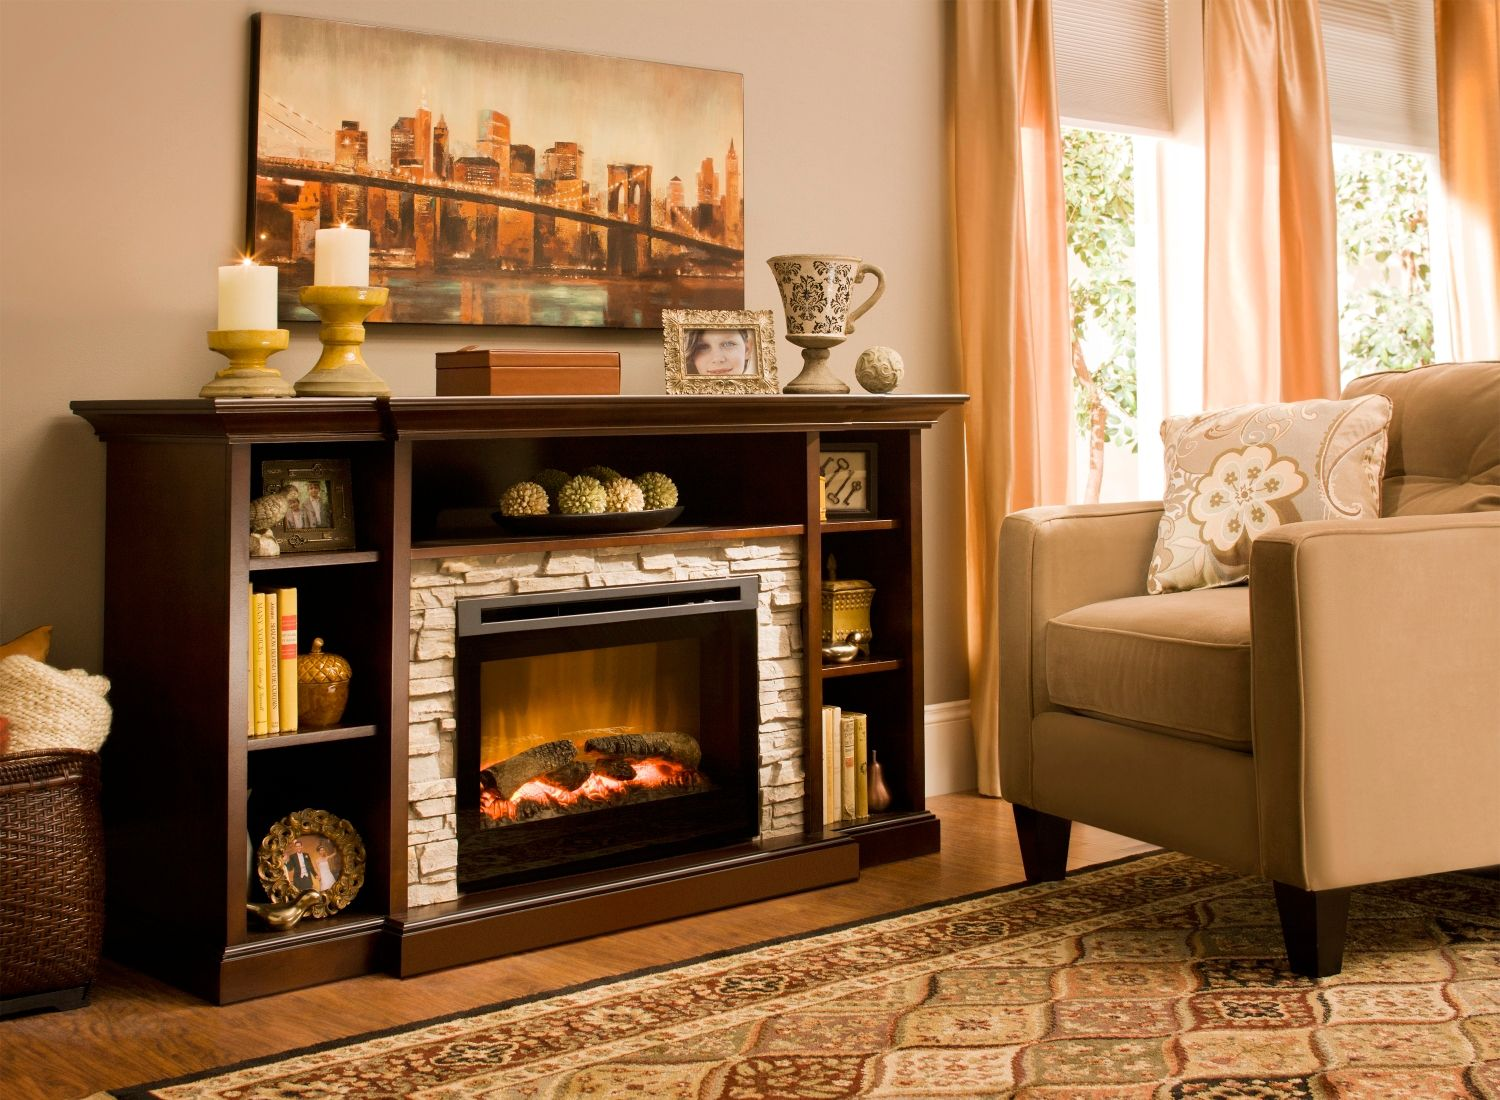 Bookshelf Fireplace Fireplace Design And Builted By Me